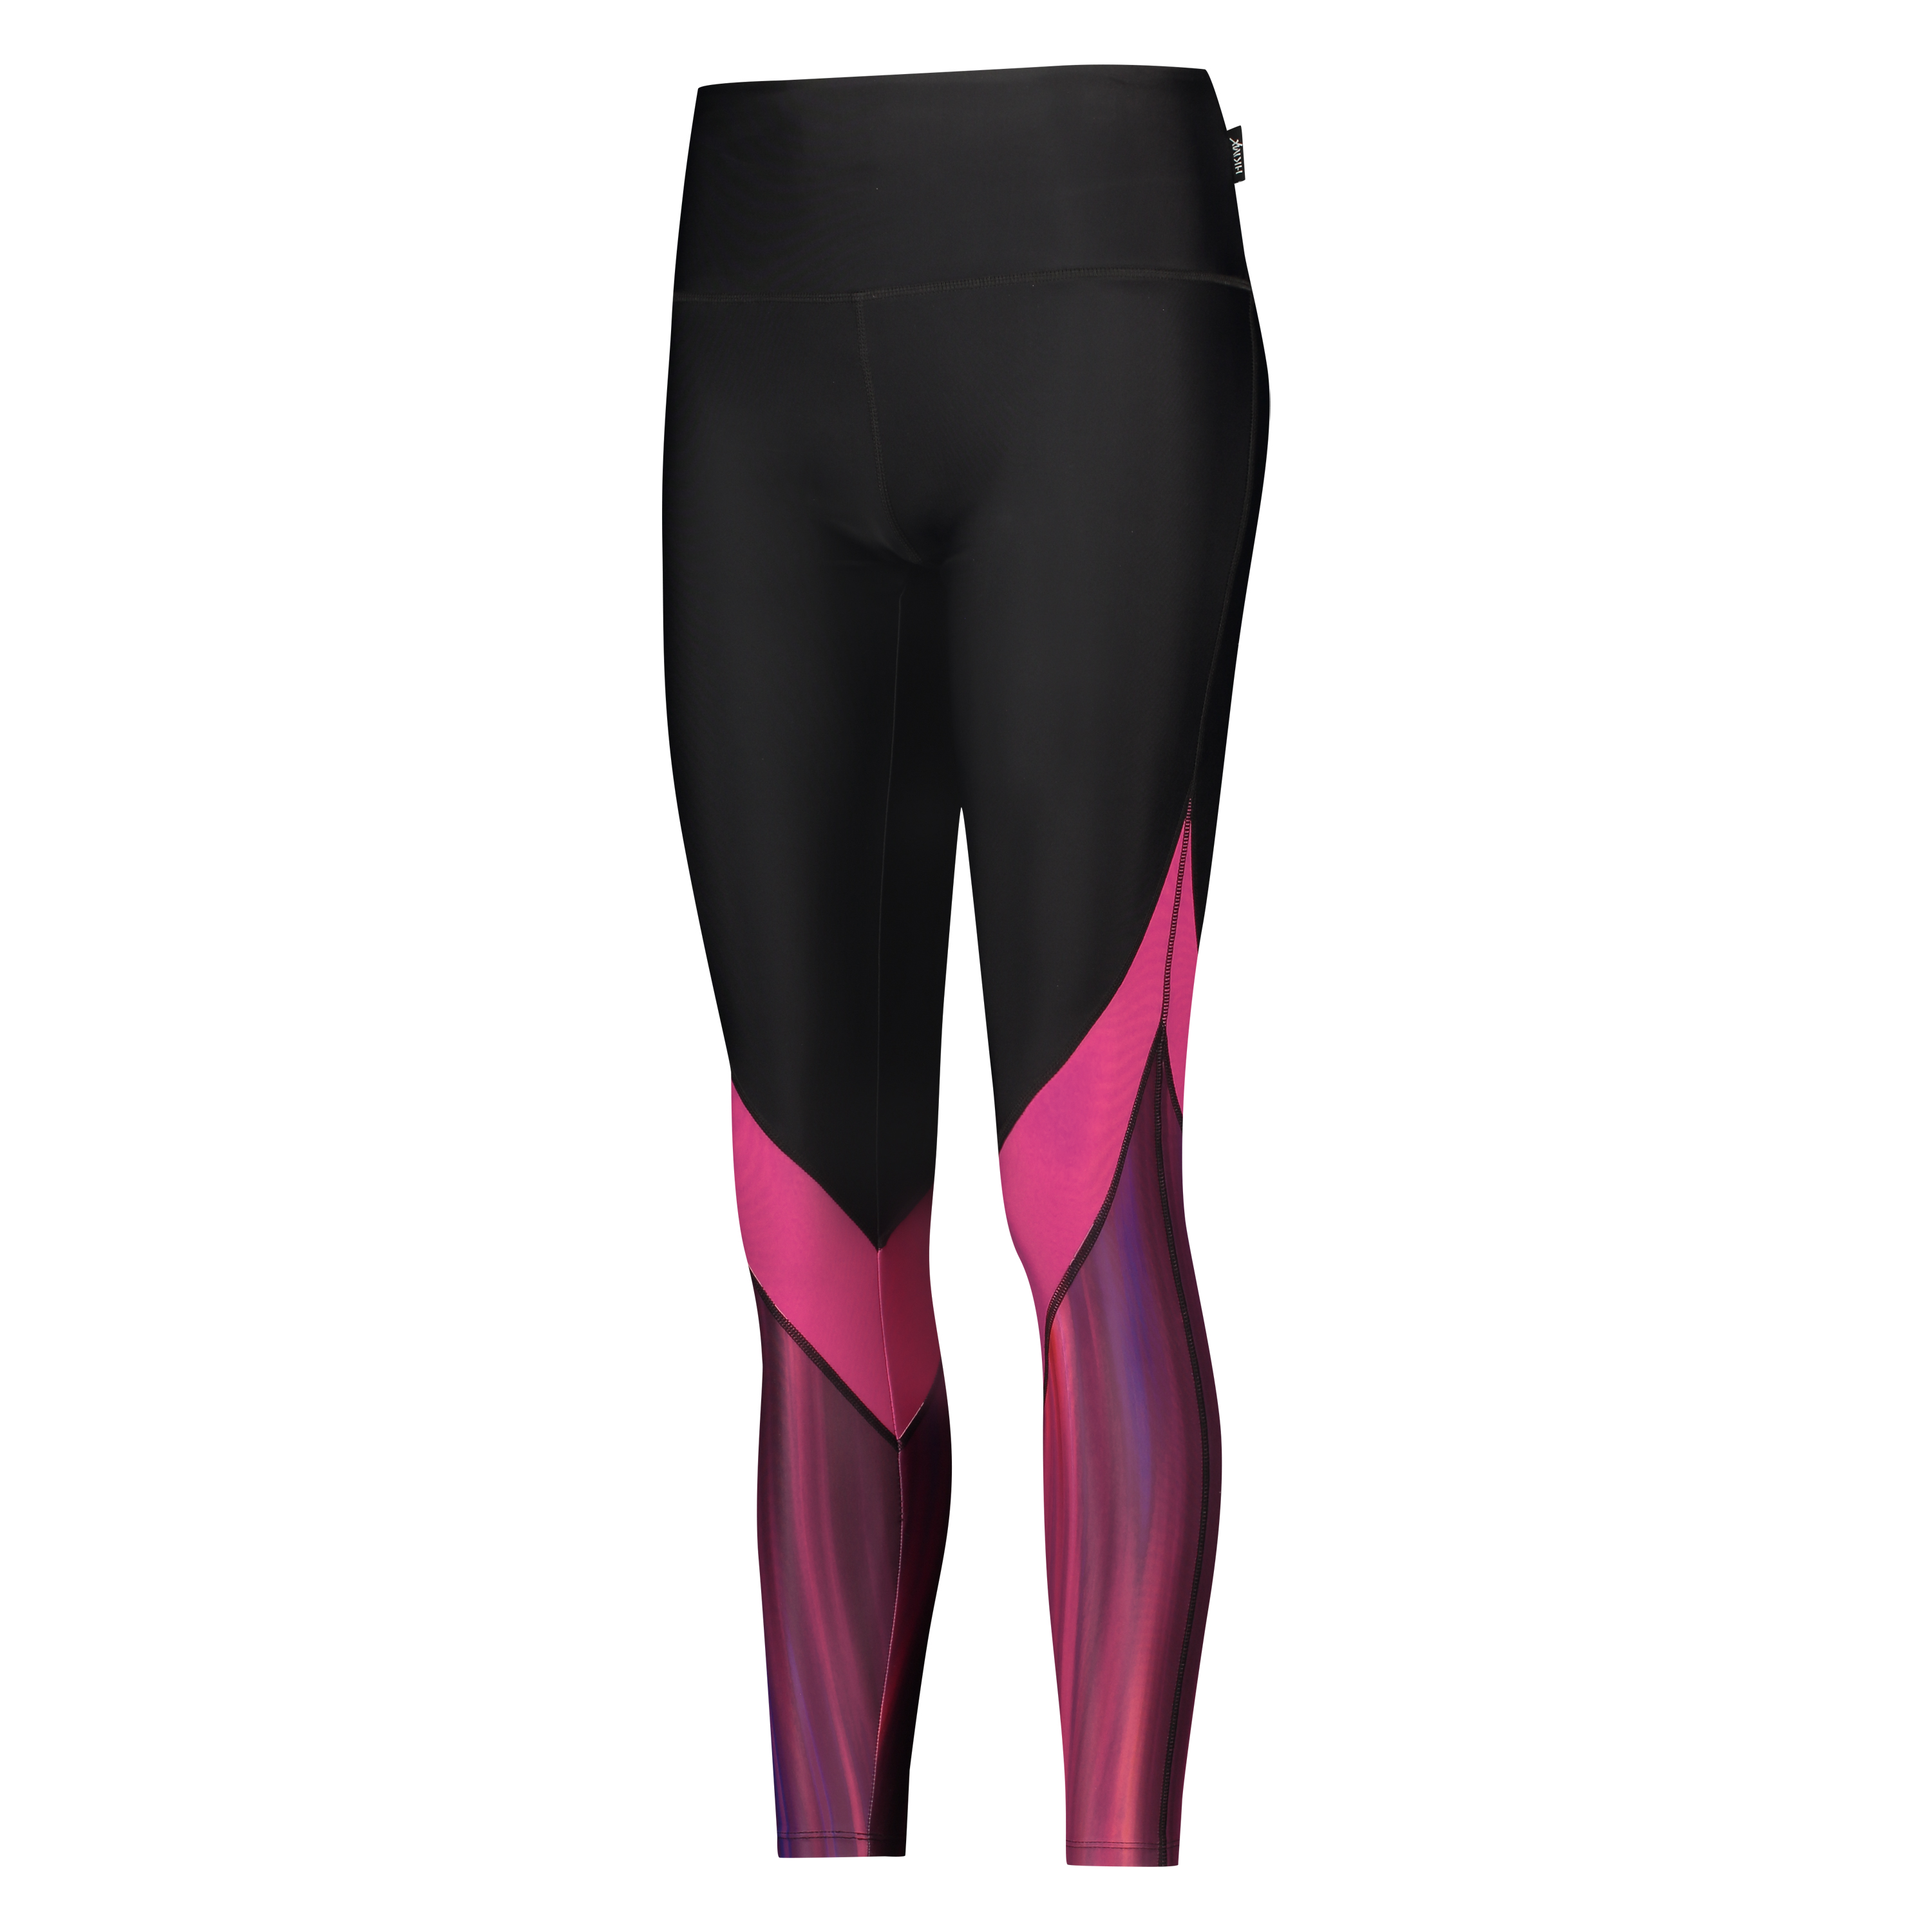 HKMX Sportlegging level 2, Roze, main